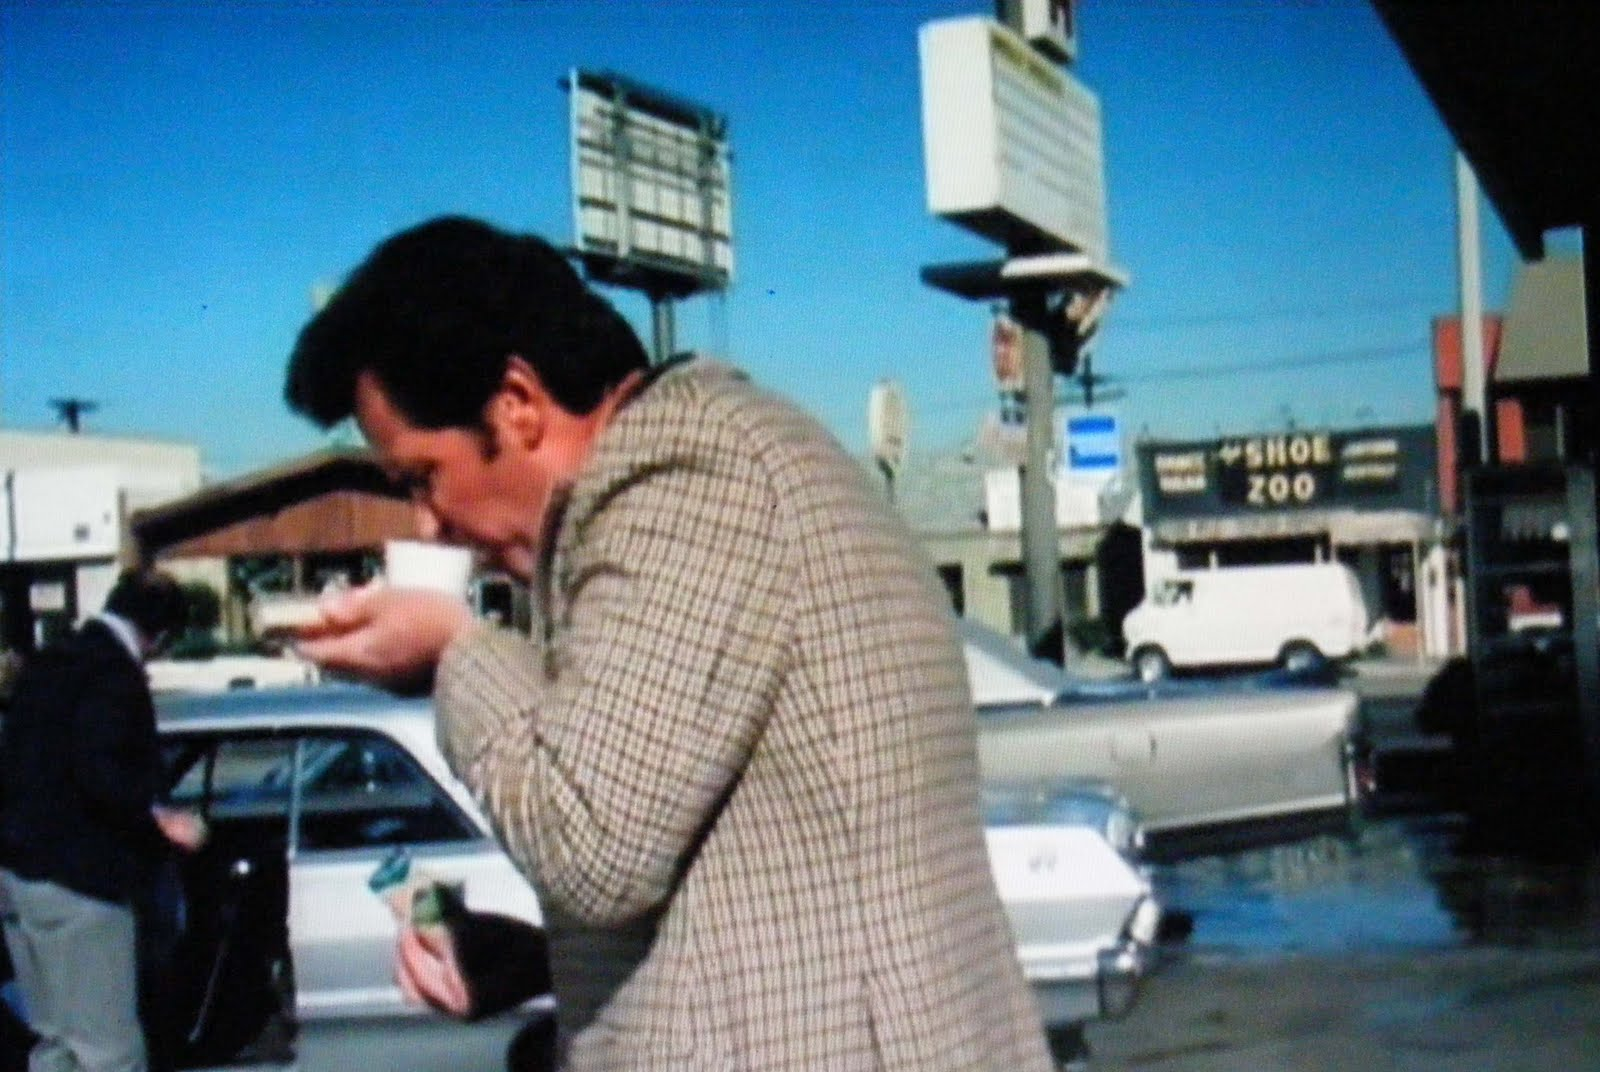 Rockford files filming locations the rockford files - Interior car cleaning los angeles ...